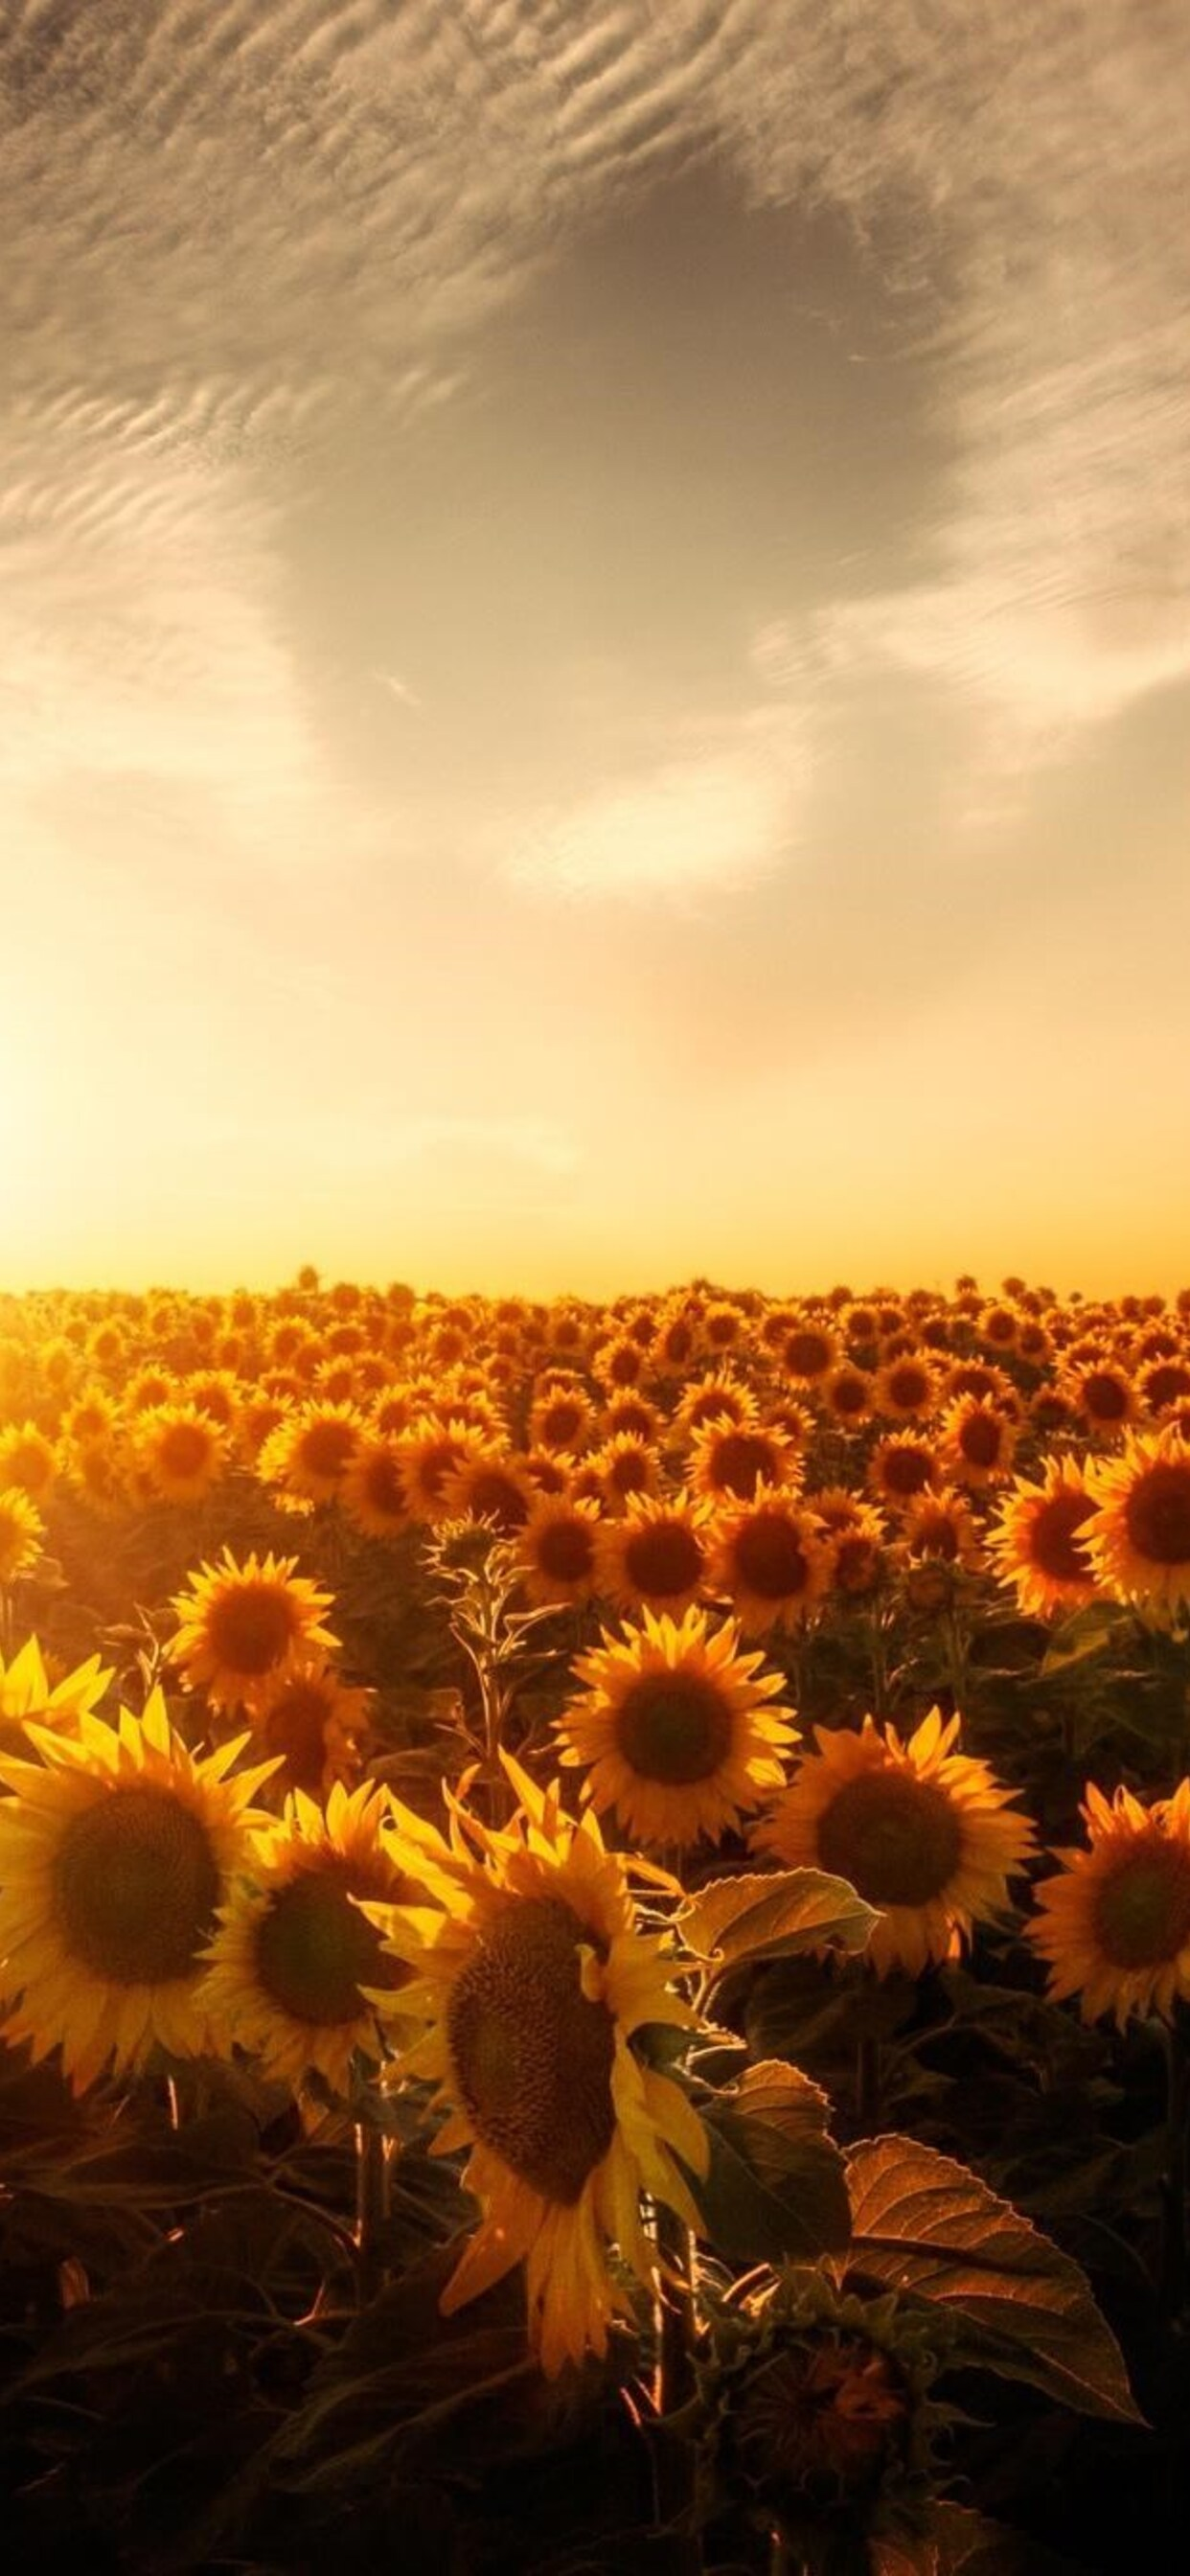 1242x2688 Sunflowers Sunset Iphone Xs Max Hd 4k Wallpapers Images